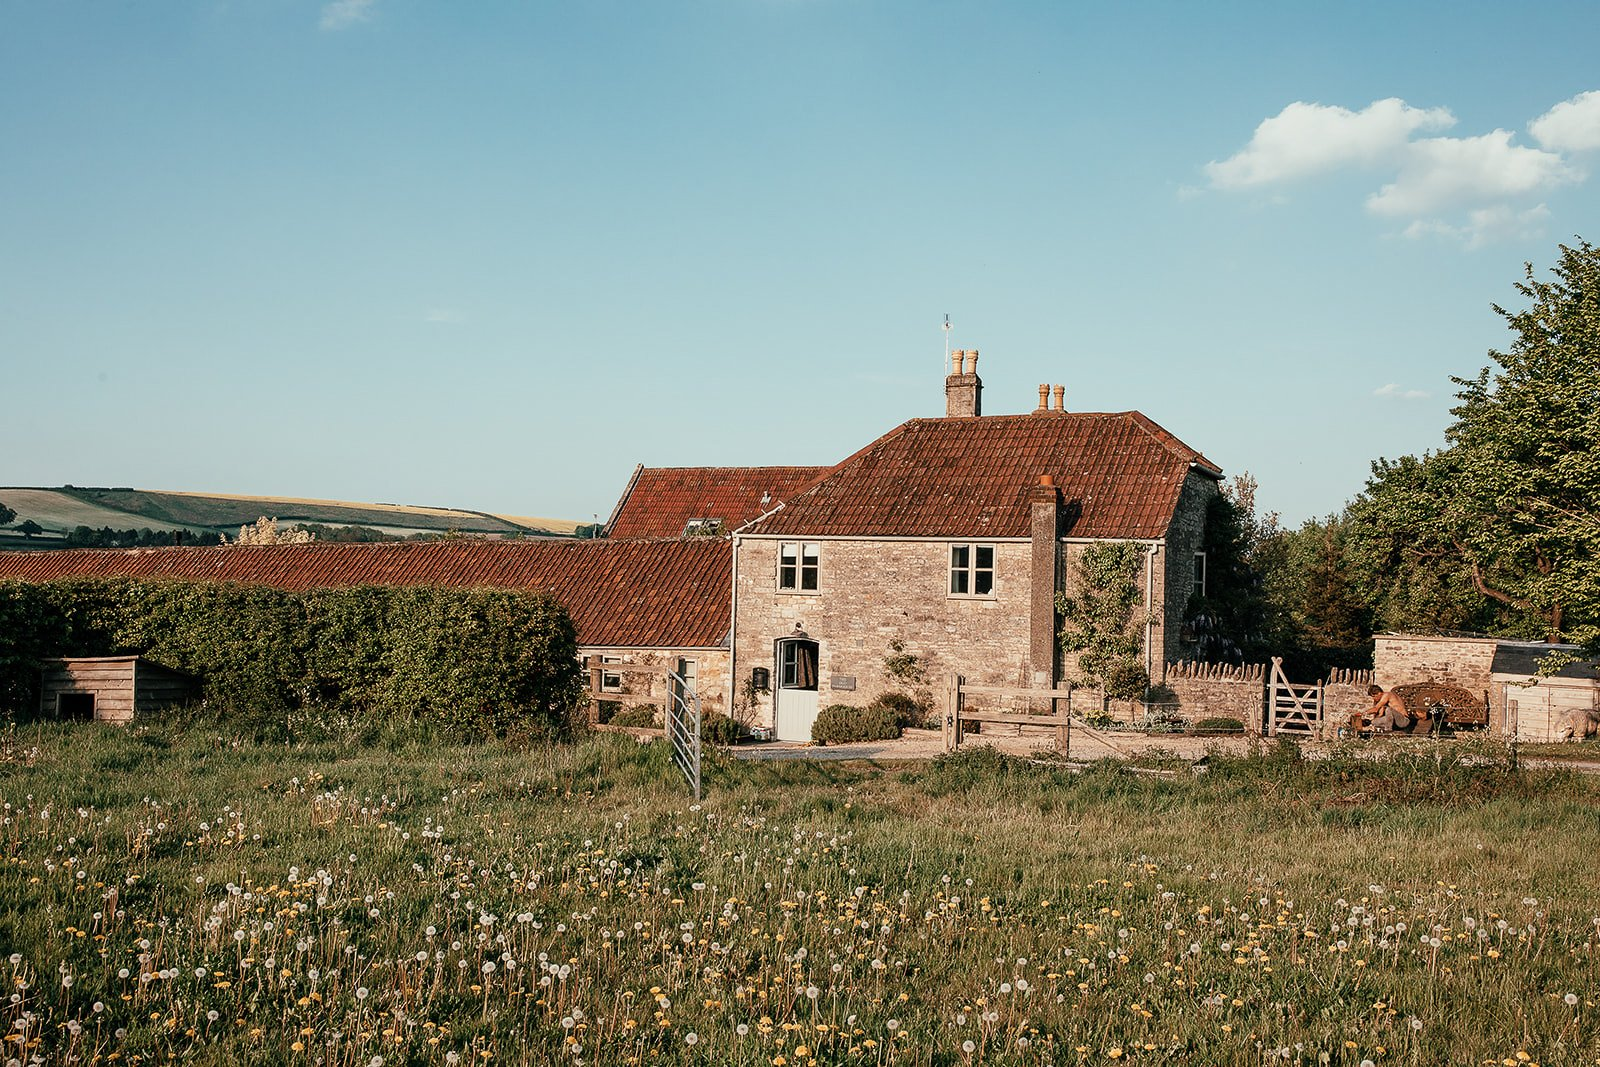 The Old Farmhouse, Castle Farm, Farmborough, Bath